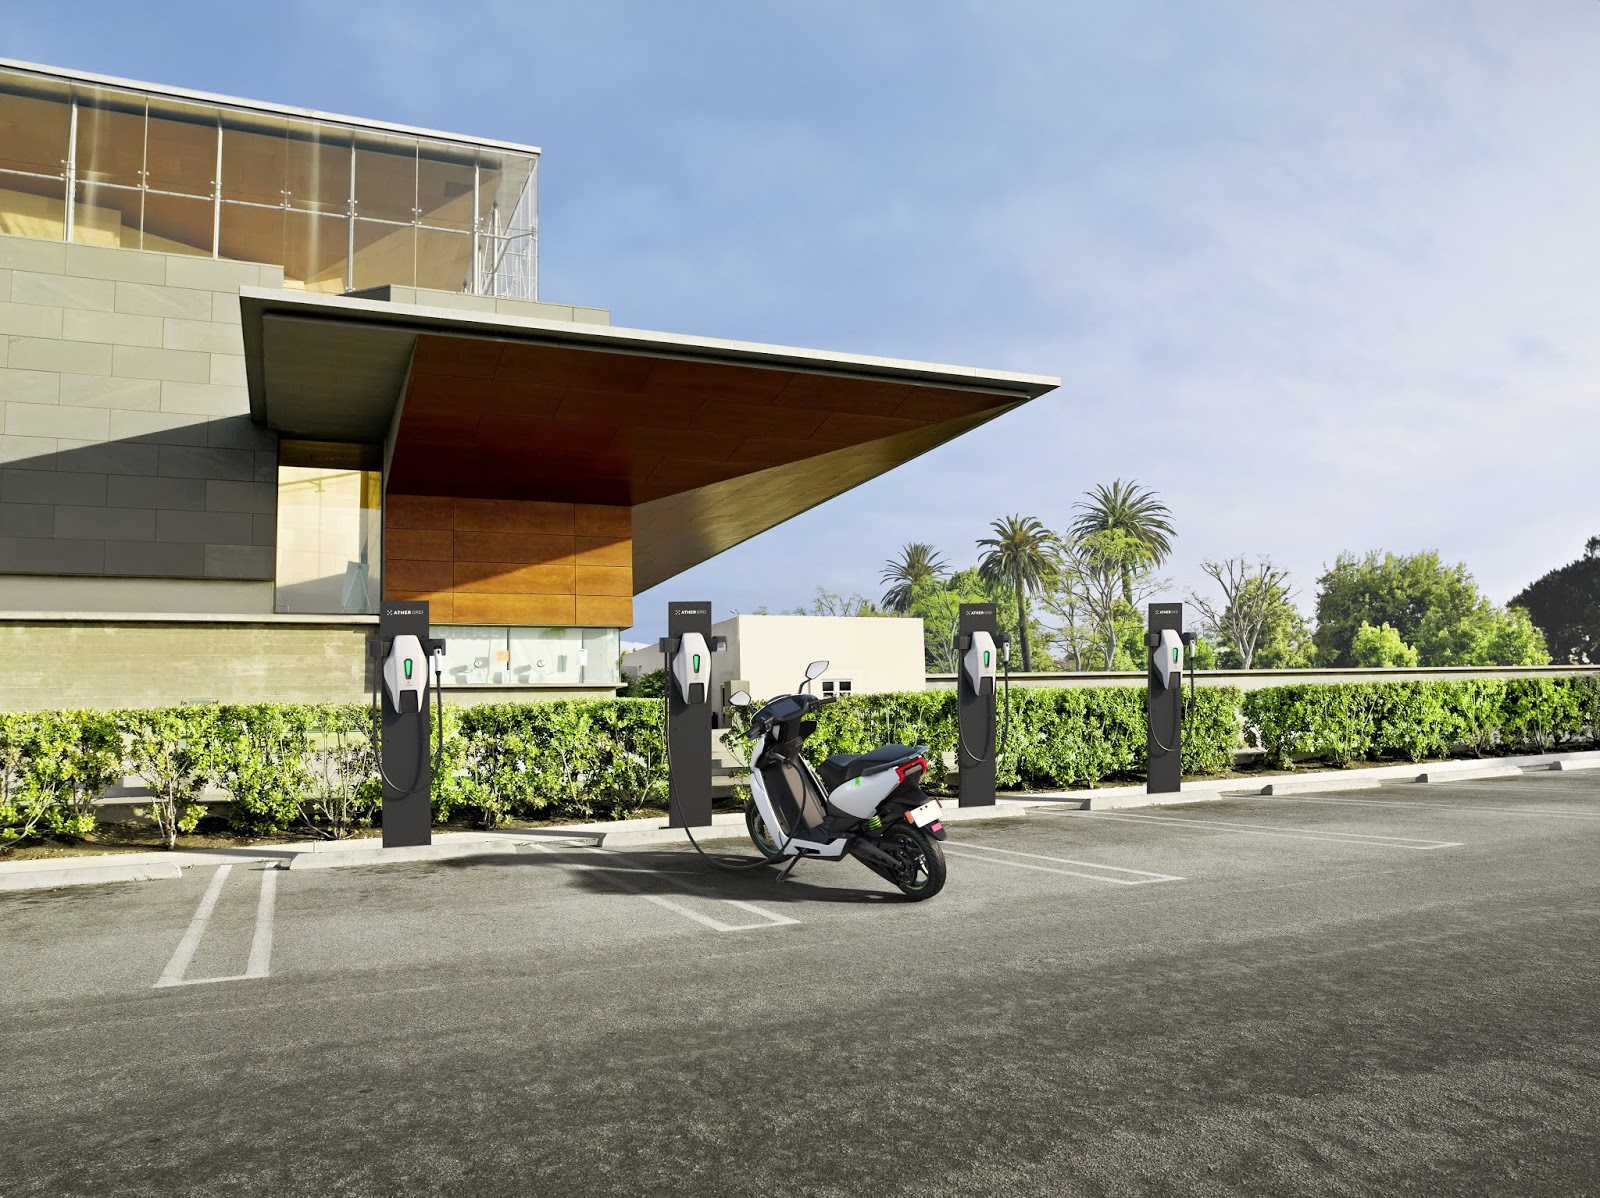 SILICON VILLAGE: Ather Energy Begins Setting-Up 50-55 Charging